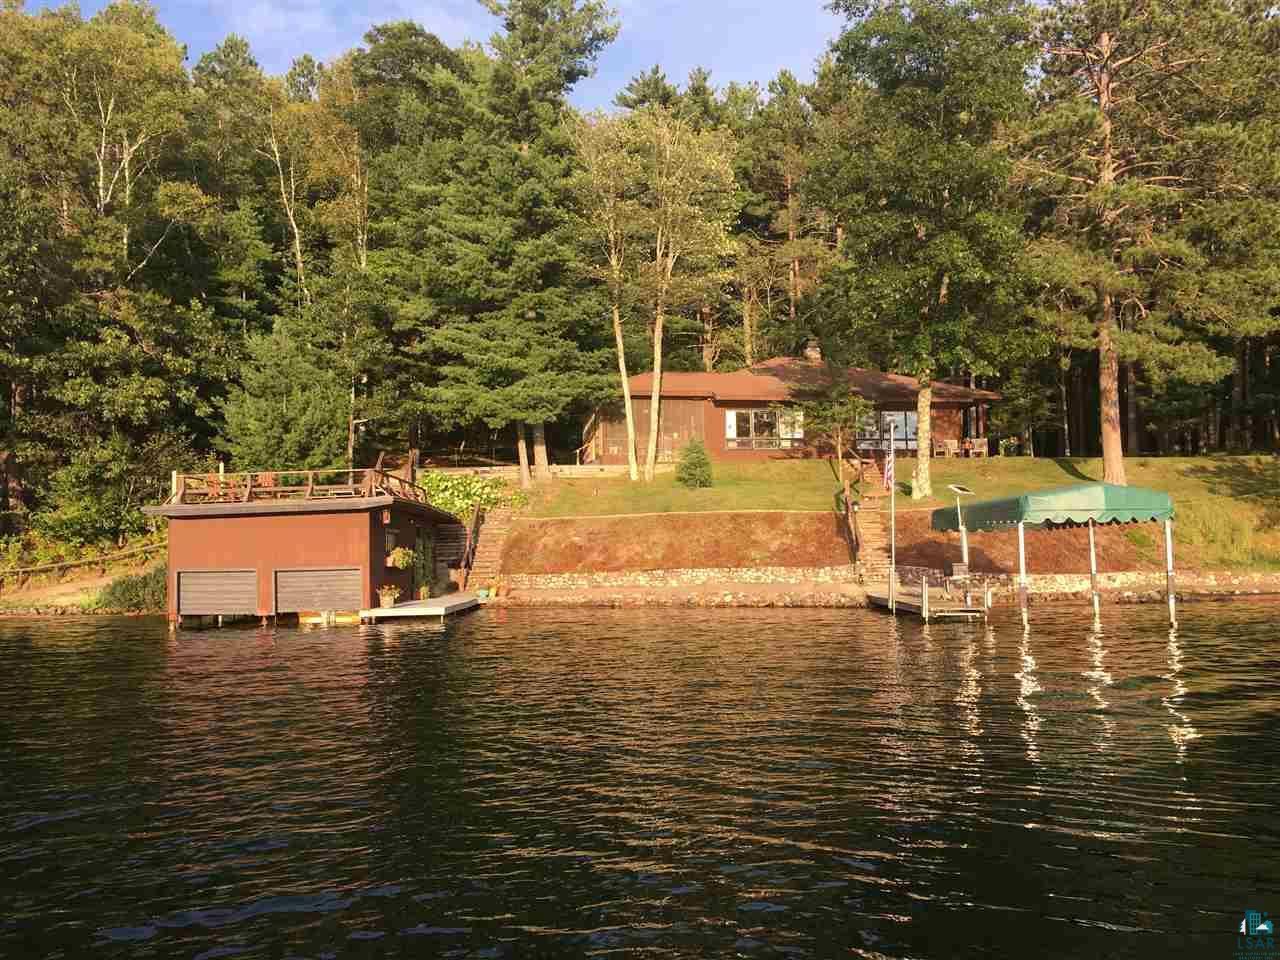 The perfect lake setting, close to the water with Western/South Western exposure for maximum sunshine and incredible sunsets.  4 BD, 2 bath home with partial basement that also has sleeping space.  Enjoy one of the nicest swimming areas on the Pike Chain of Lakes.  Boathouse fits 2 boats and has a wonderful sauna, and sundeck above.  2 car garage and large lot with towering pine trees affords maximum privacy!